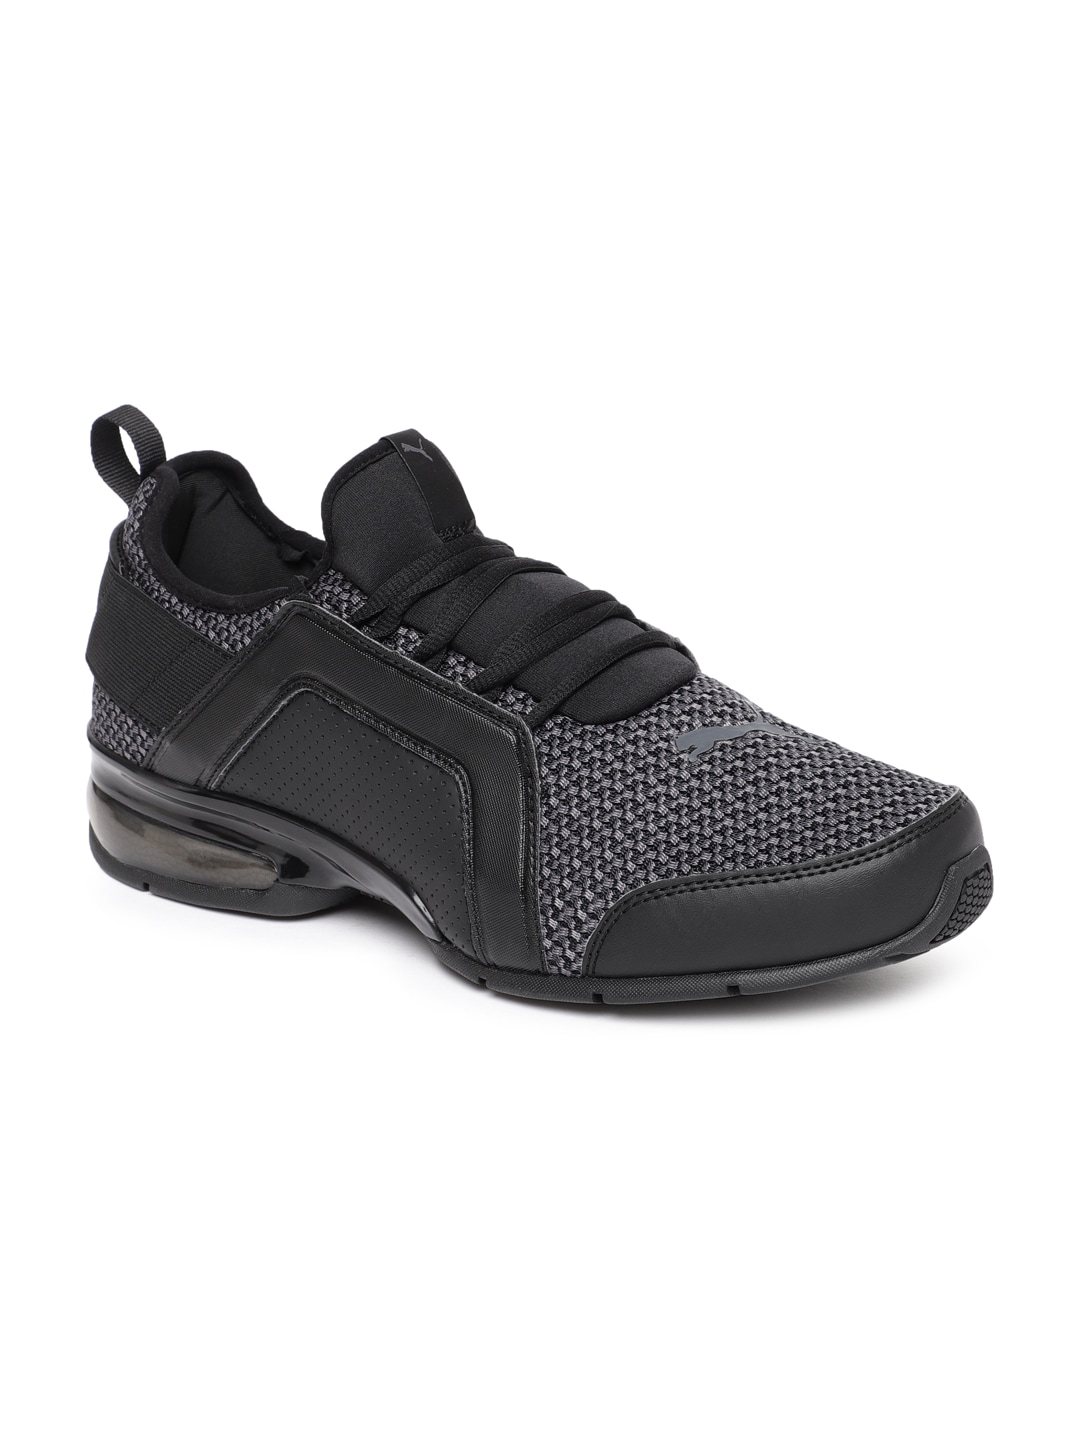 090722ede8e75d Puma Apple Sports Shoes - Buy Puma Apple Sports Shoes online in India